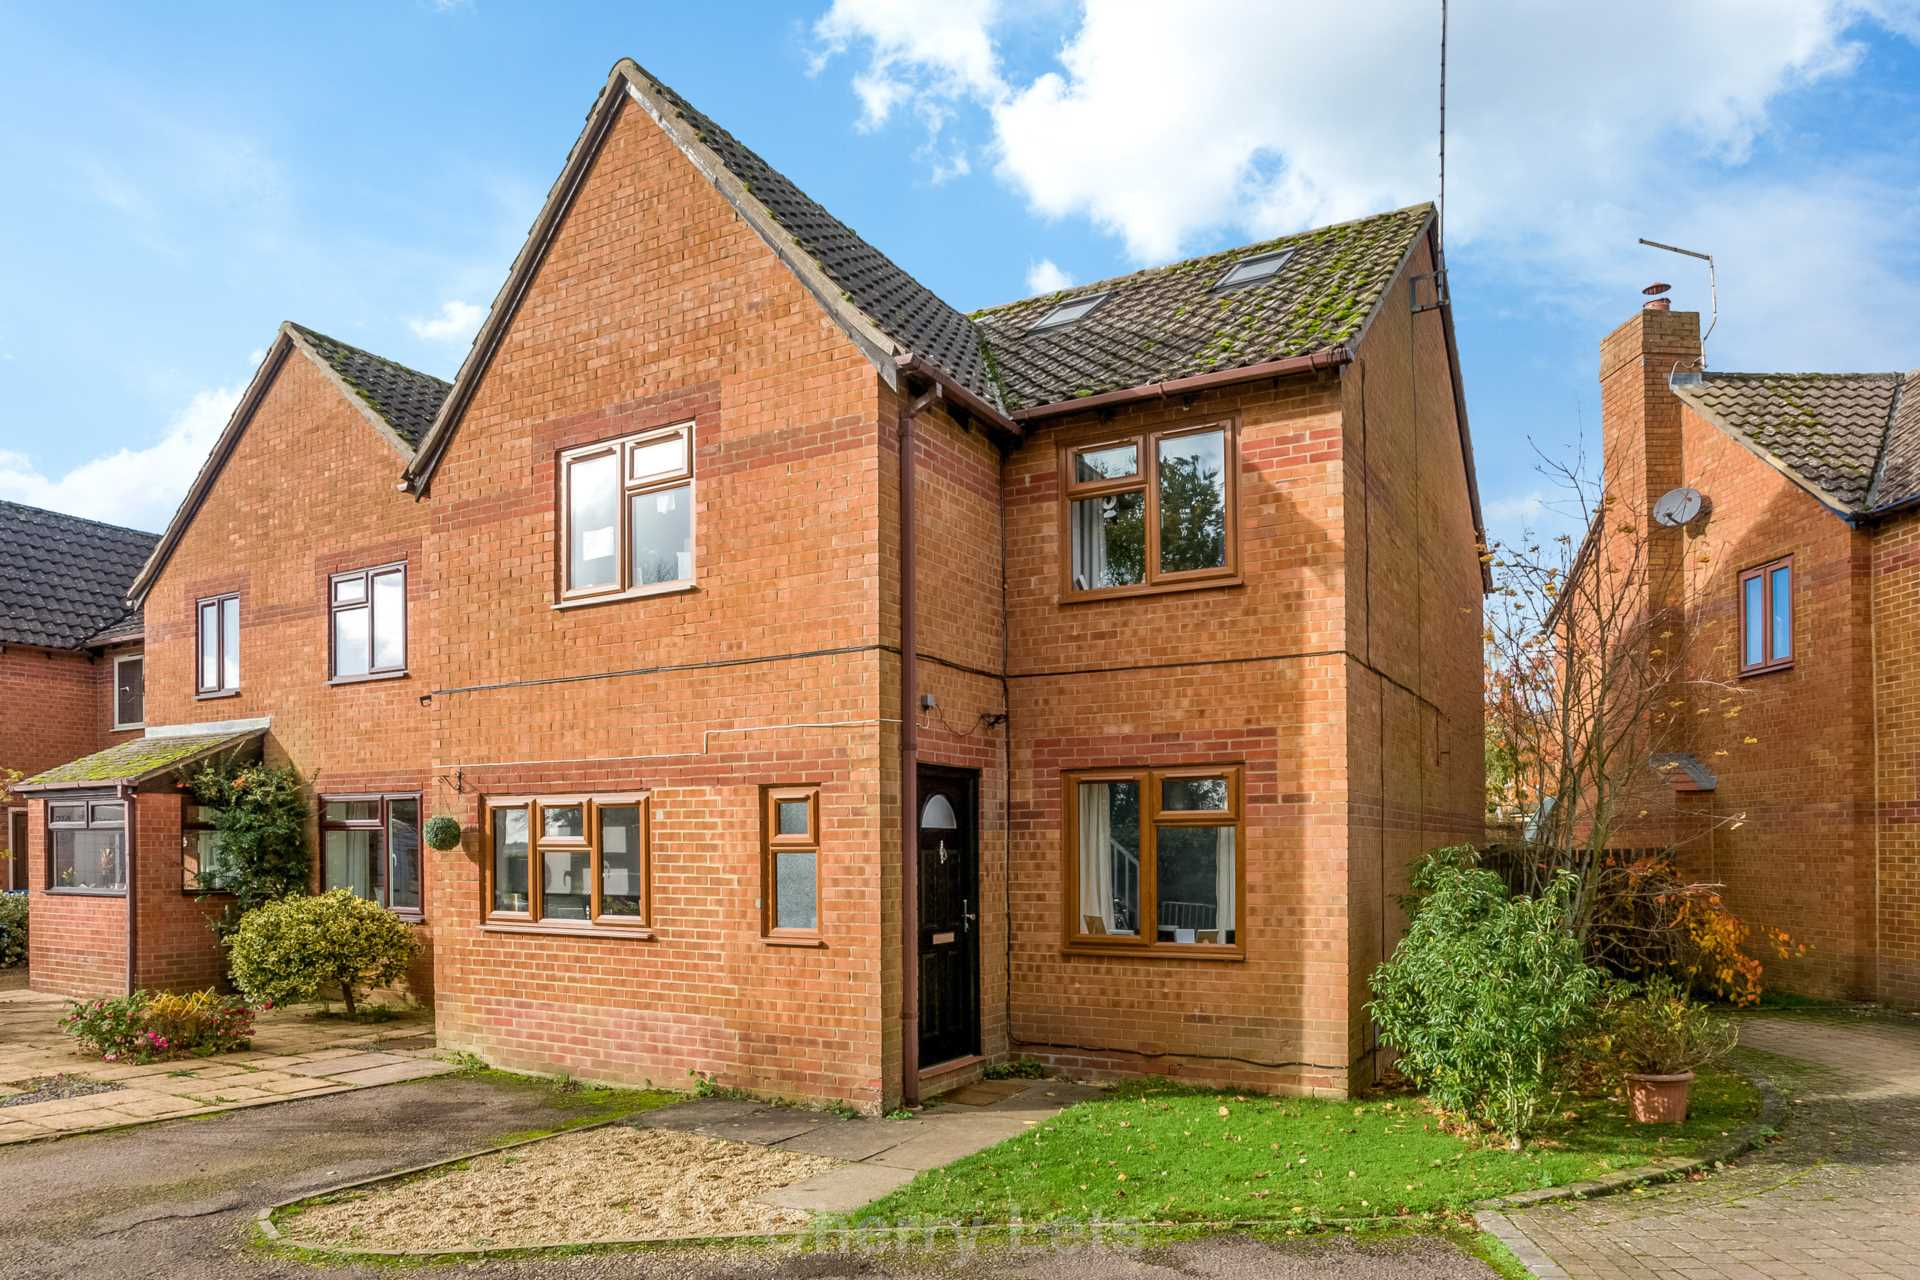 3 bed detached house to rent in Mill Close, Deddington, OX15  - Property Image 1